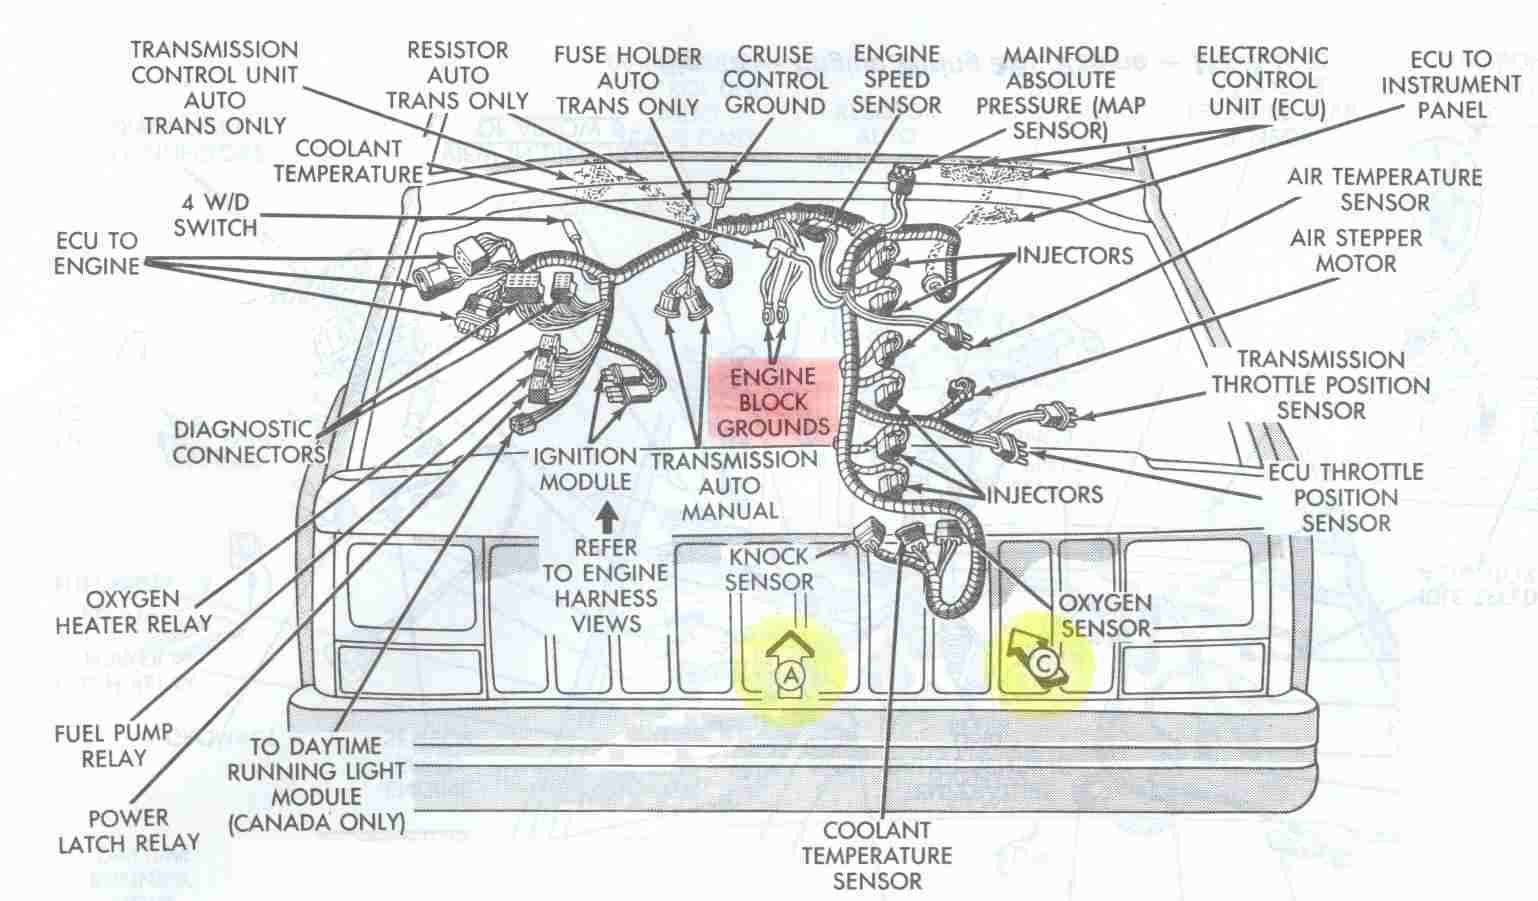 ab0134a7d9e021431187af597eb4aeca engine bay schematic showing major electrical ground points for 2001 Jeep Cherokee Fuse Location at panicattacktreatment.co